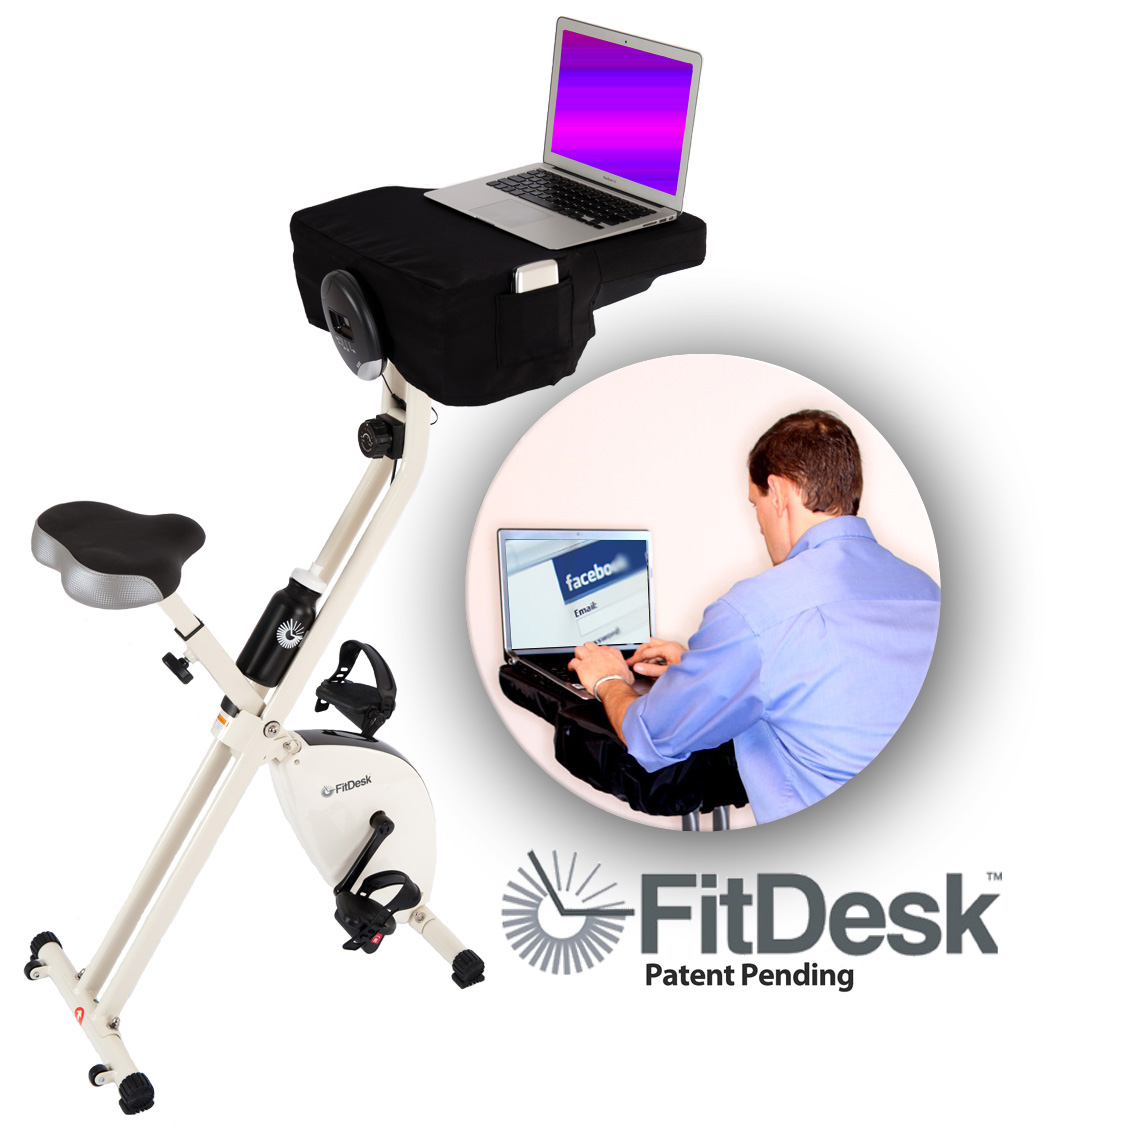 Facebook Fitness with a FitDesk